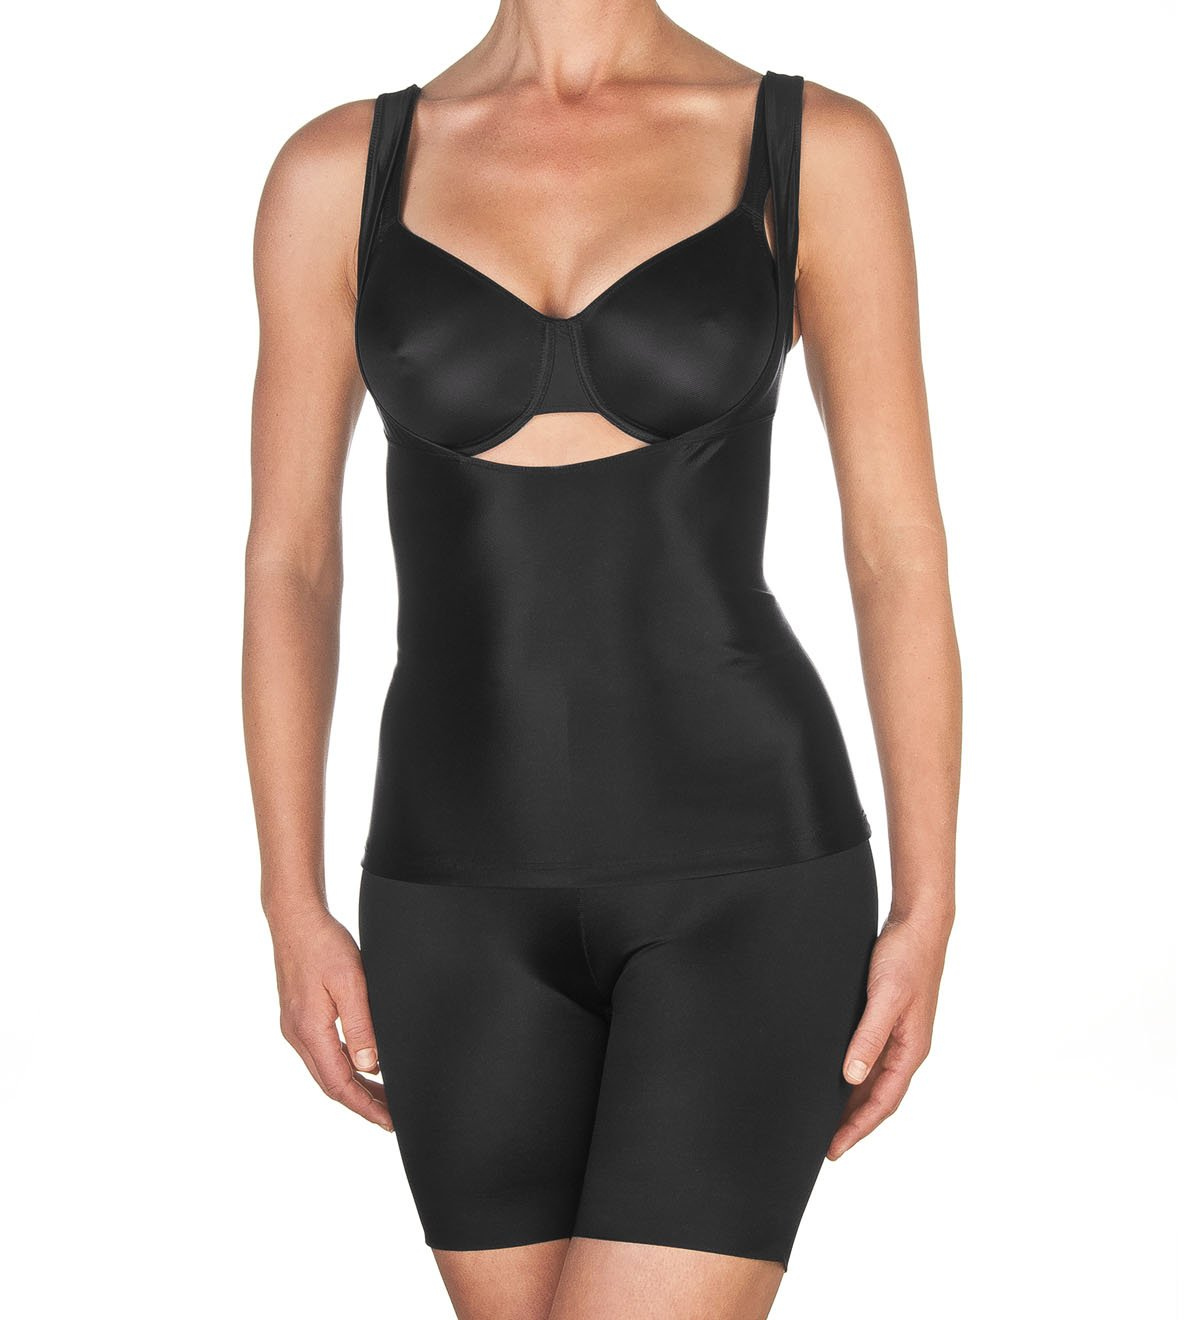 abd2c7035f Conturelle - Soft Touch Body Shaper Black – Ouh La La